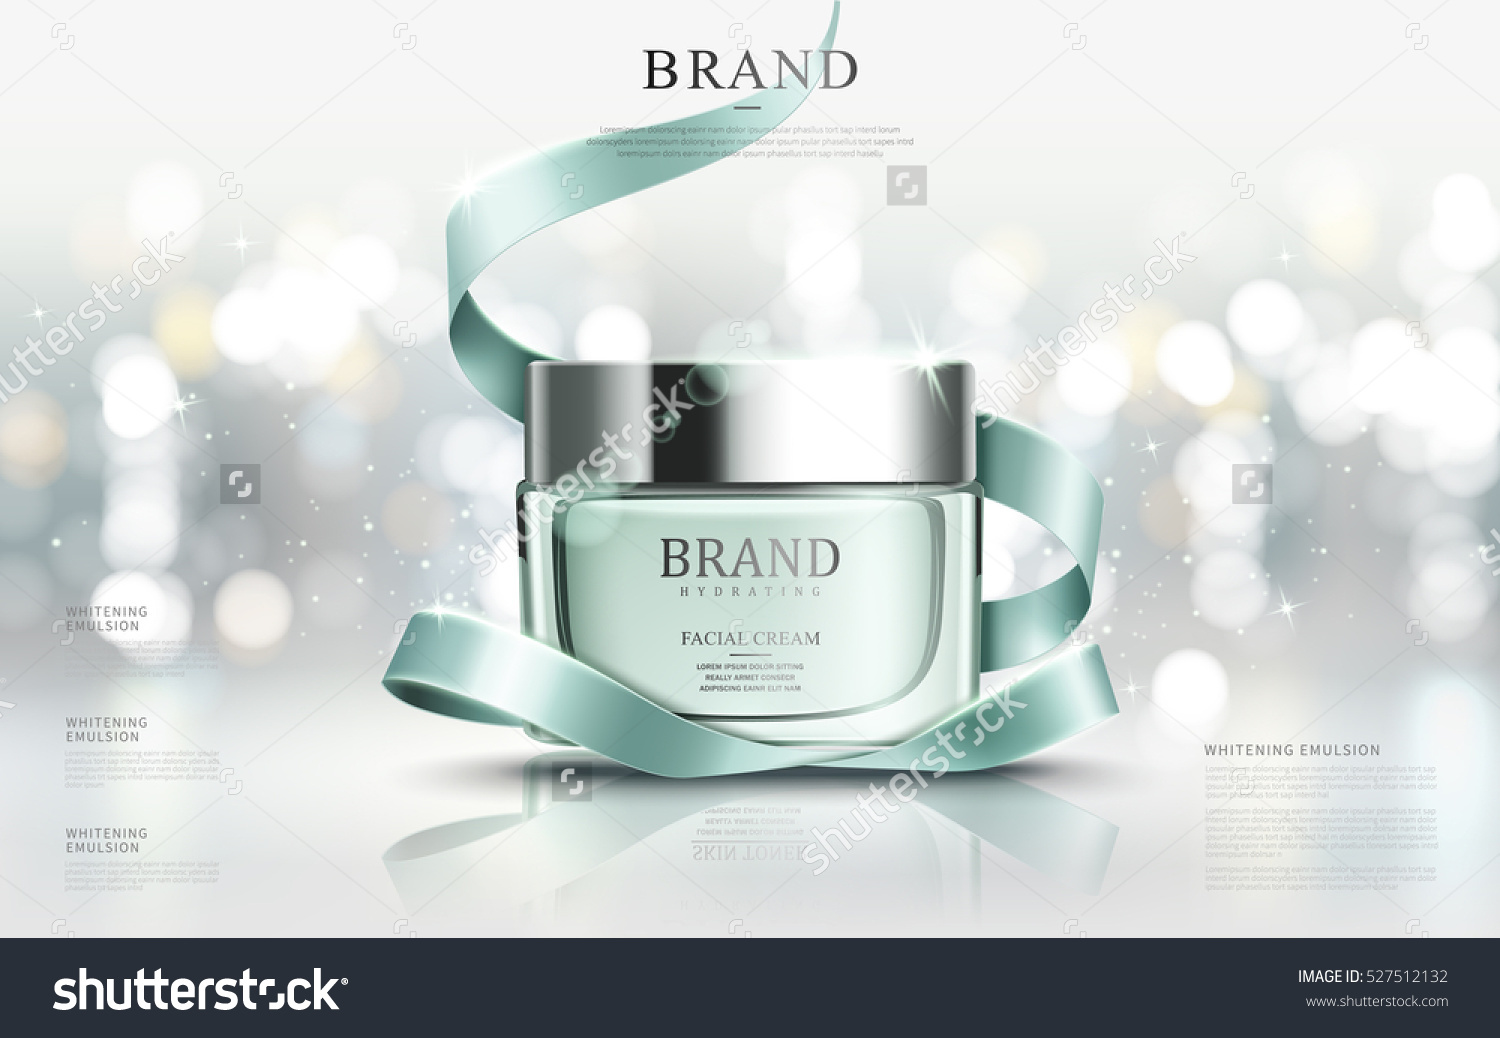 Graceful cosmetic ads, hydrating facial cream for annual sale or christmas sale. Turquoise cream mask bottle isolated on glitter particles with elegant ribbon. 3D illustration. #527512132